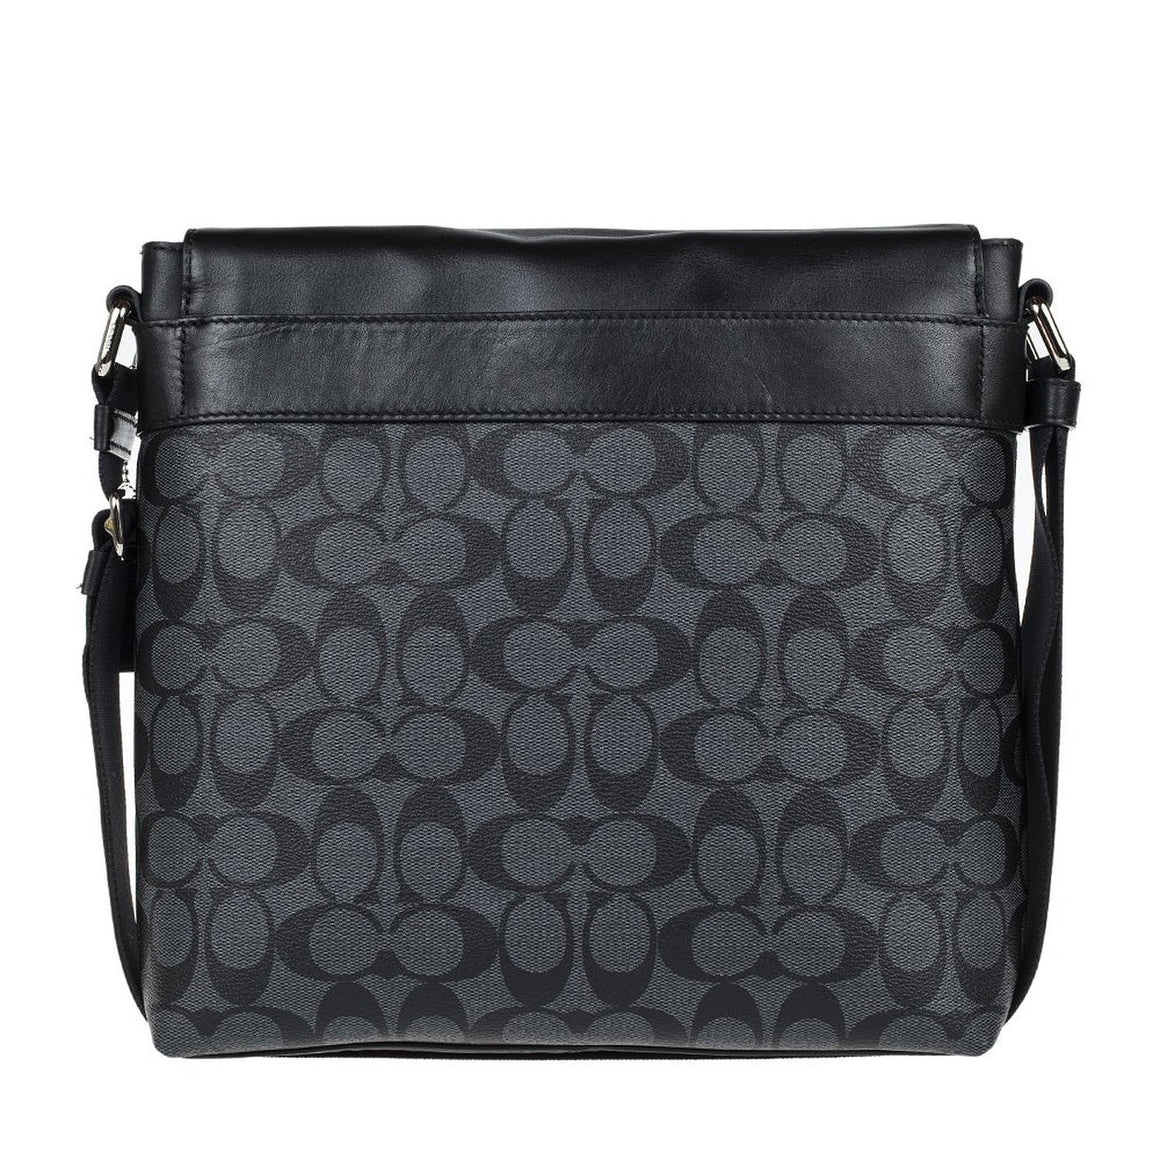 Charles Small Messenger In Signature (Coach F54771) Charcoal/Black Mens Bags Coach